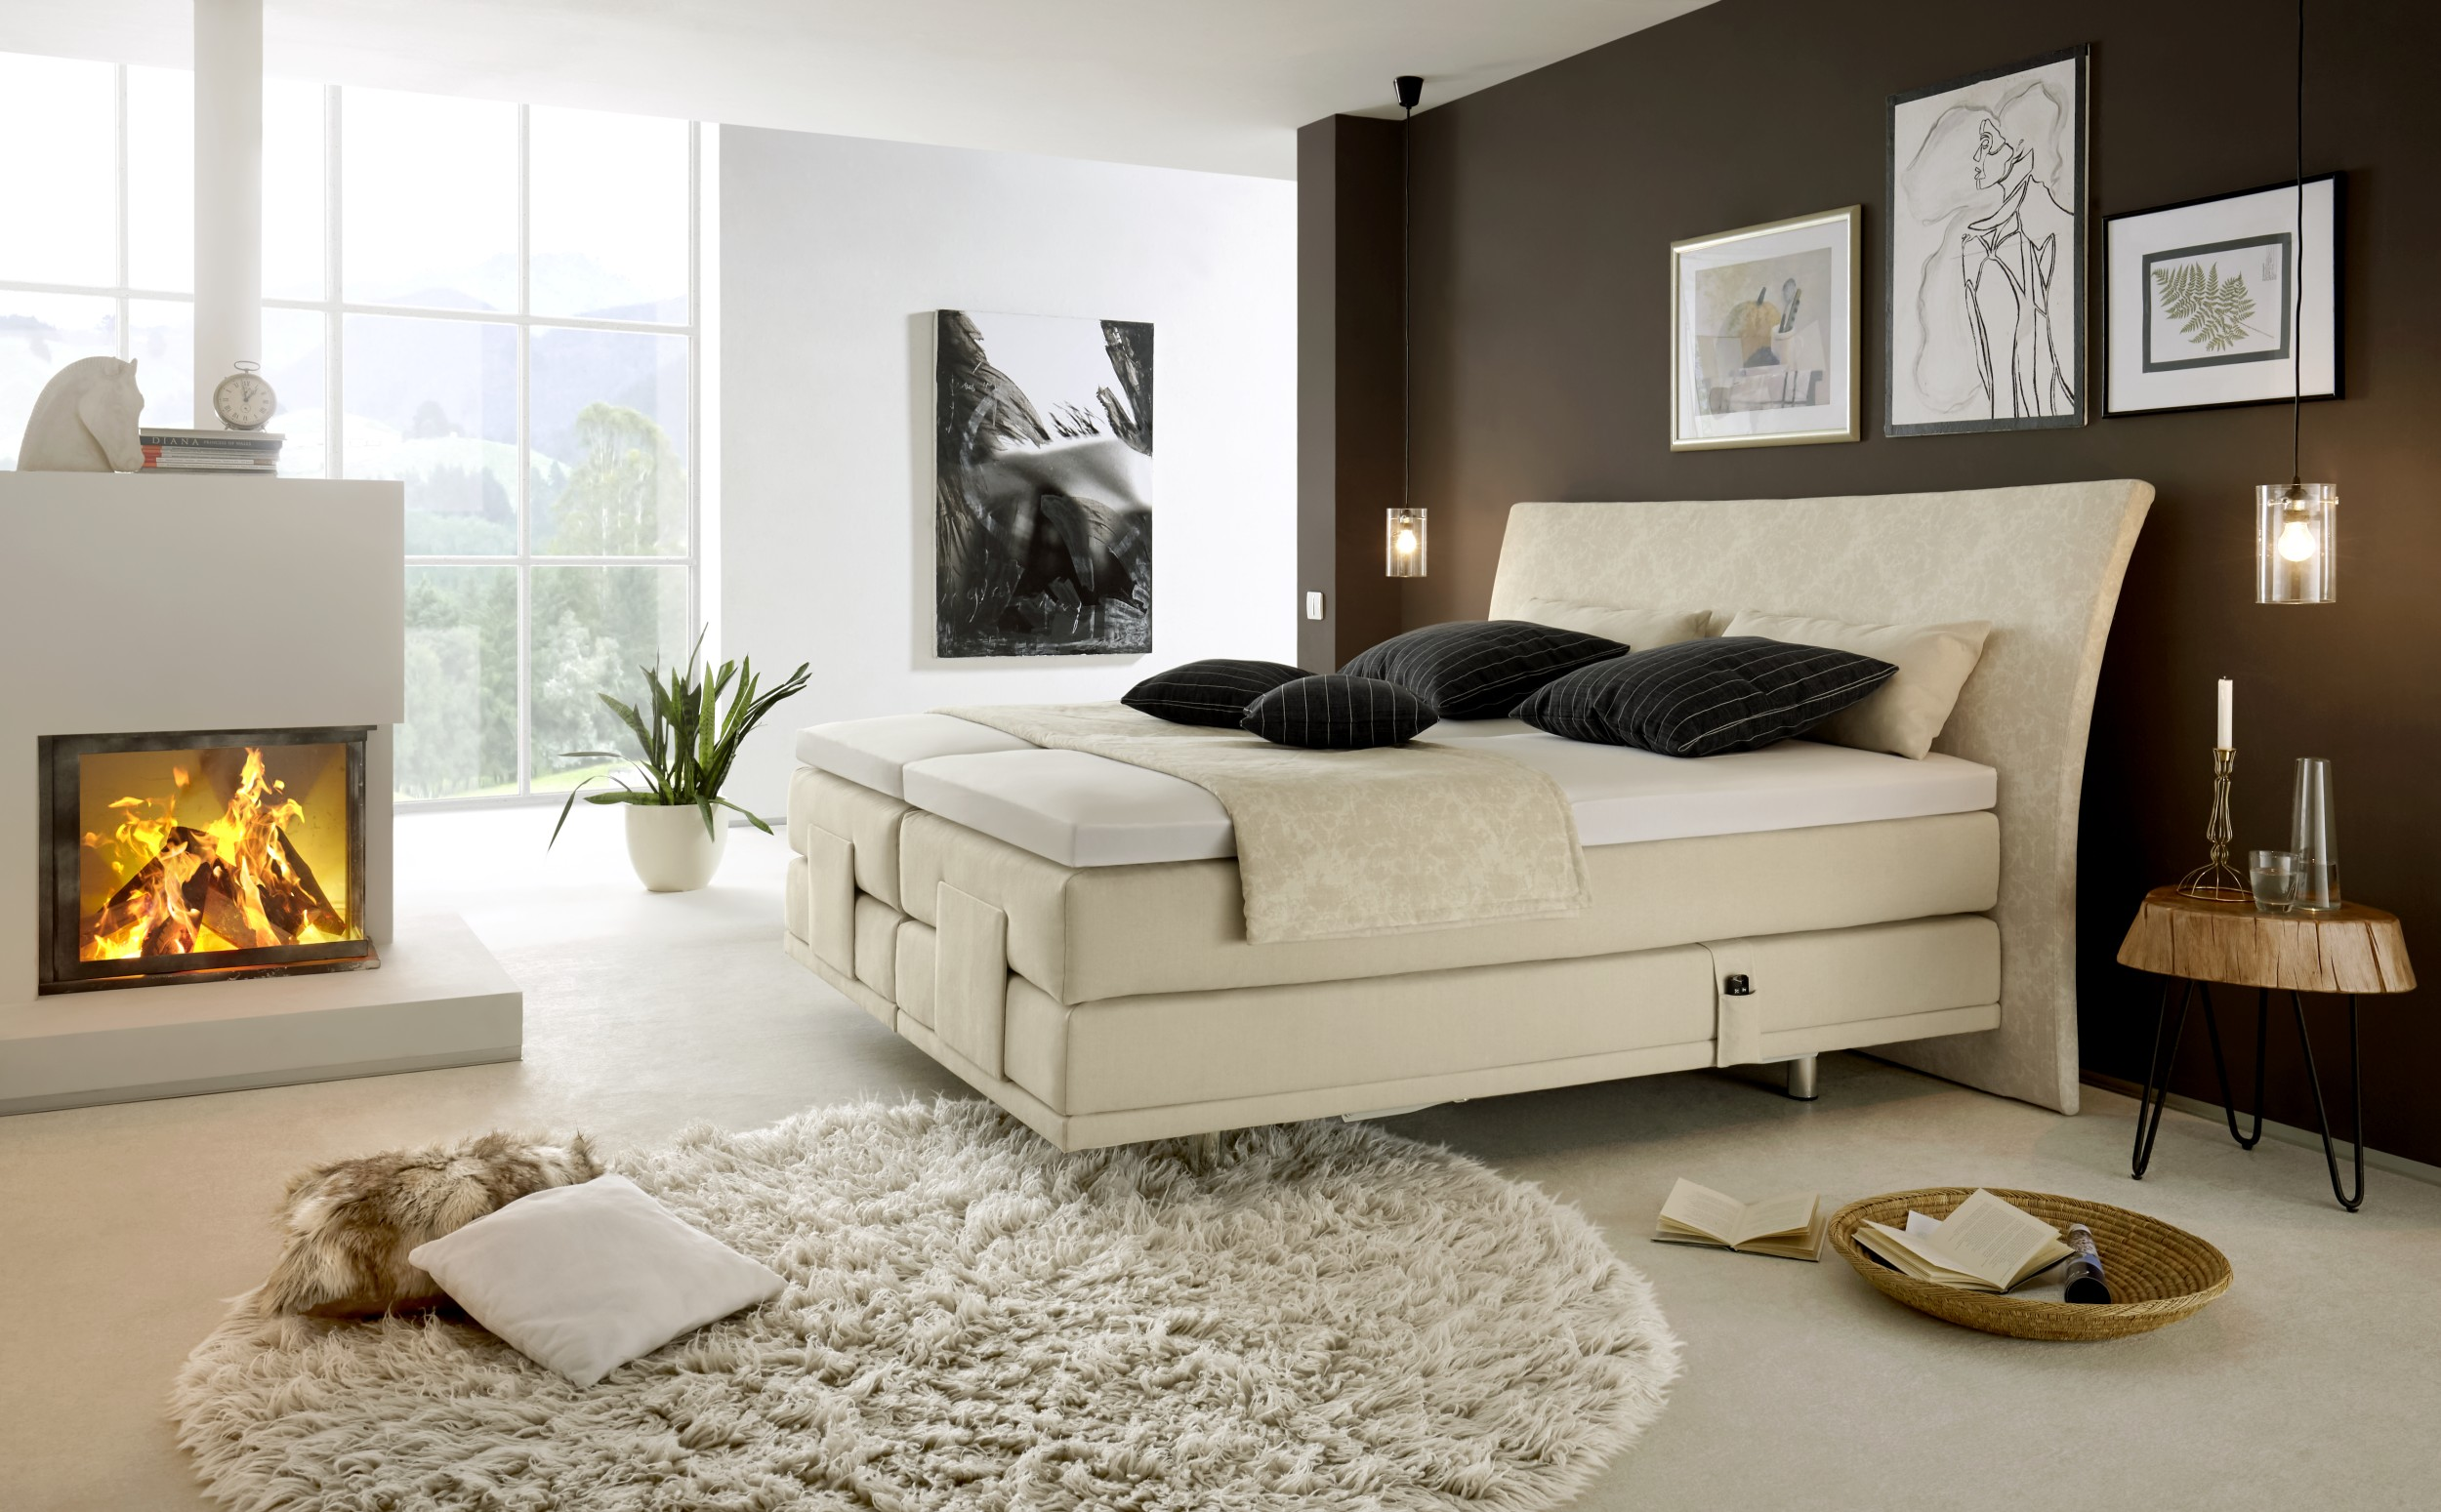 FEMIRA_Boxspring_bedrooms_couture sphere_9888-9895-01-AM